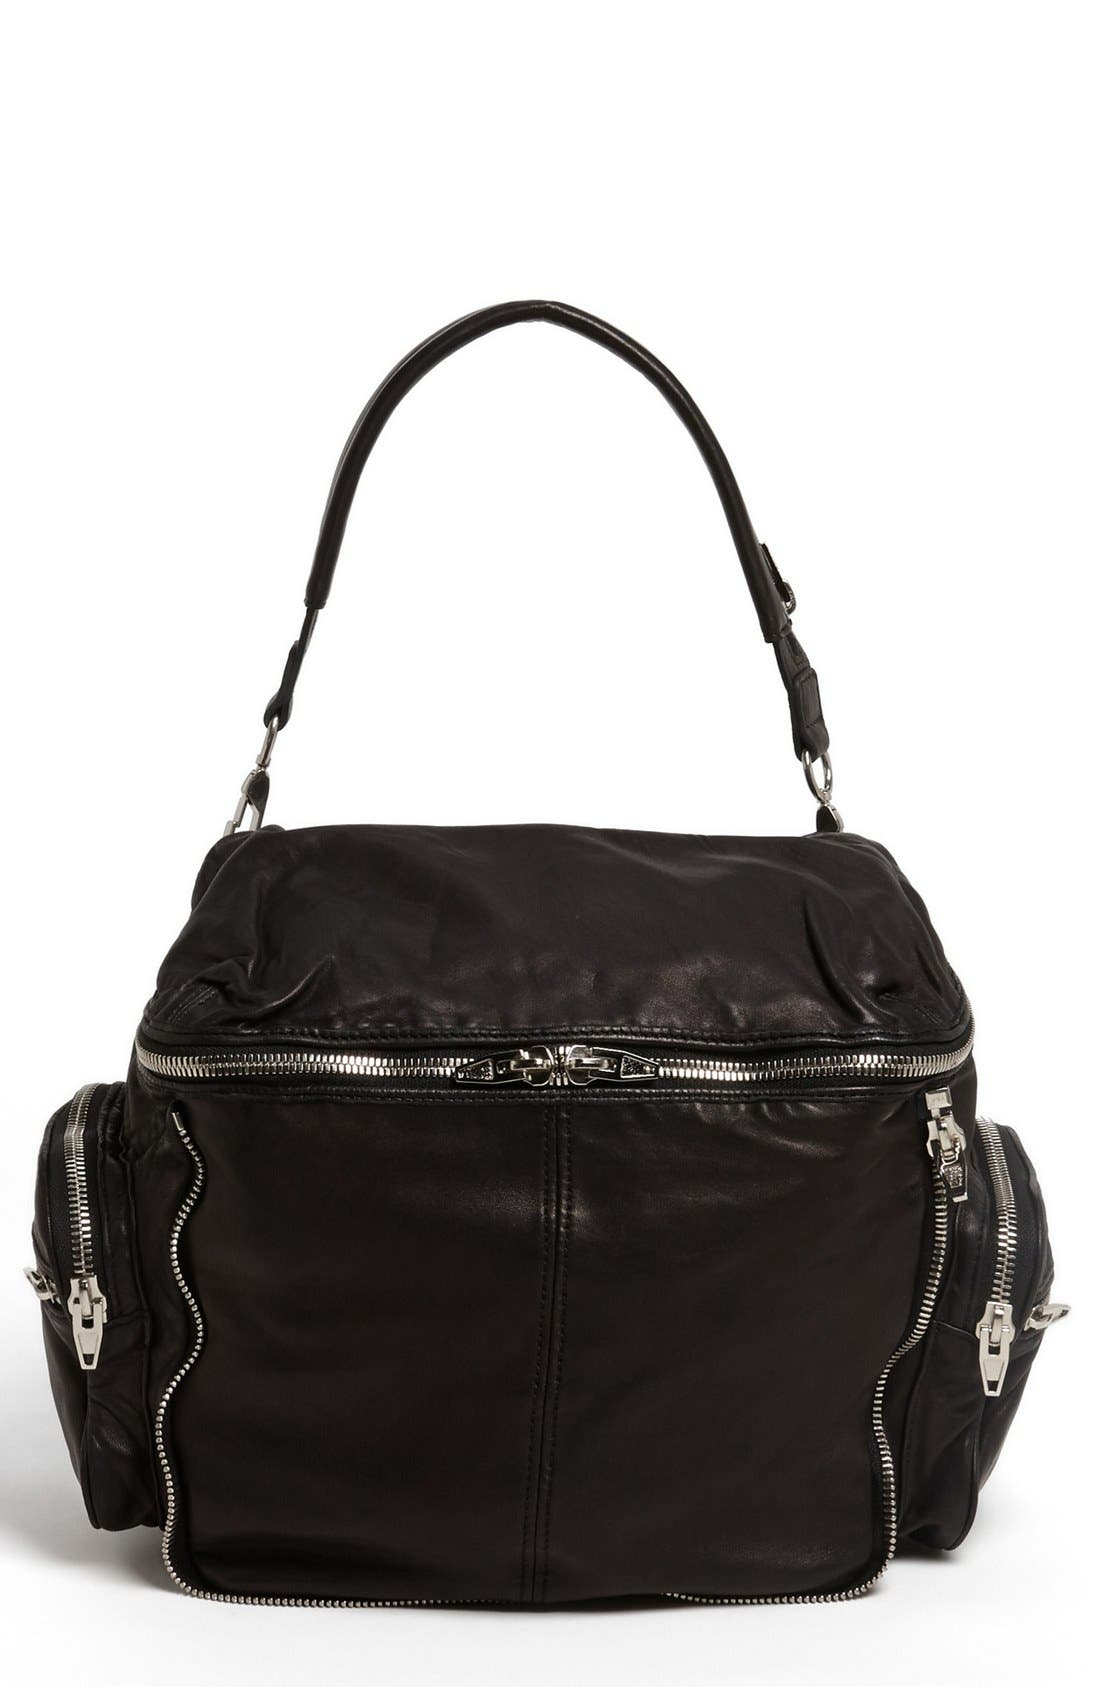 Alternate Image 1 Selected - Alexander Wang 'Jane - Nickel' Leather Shoulder Bag